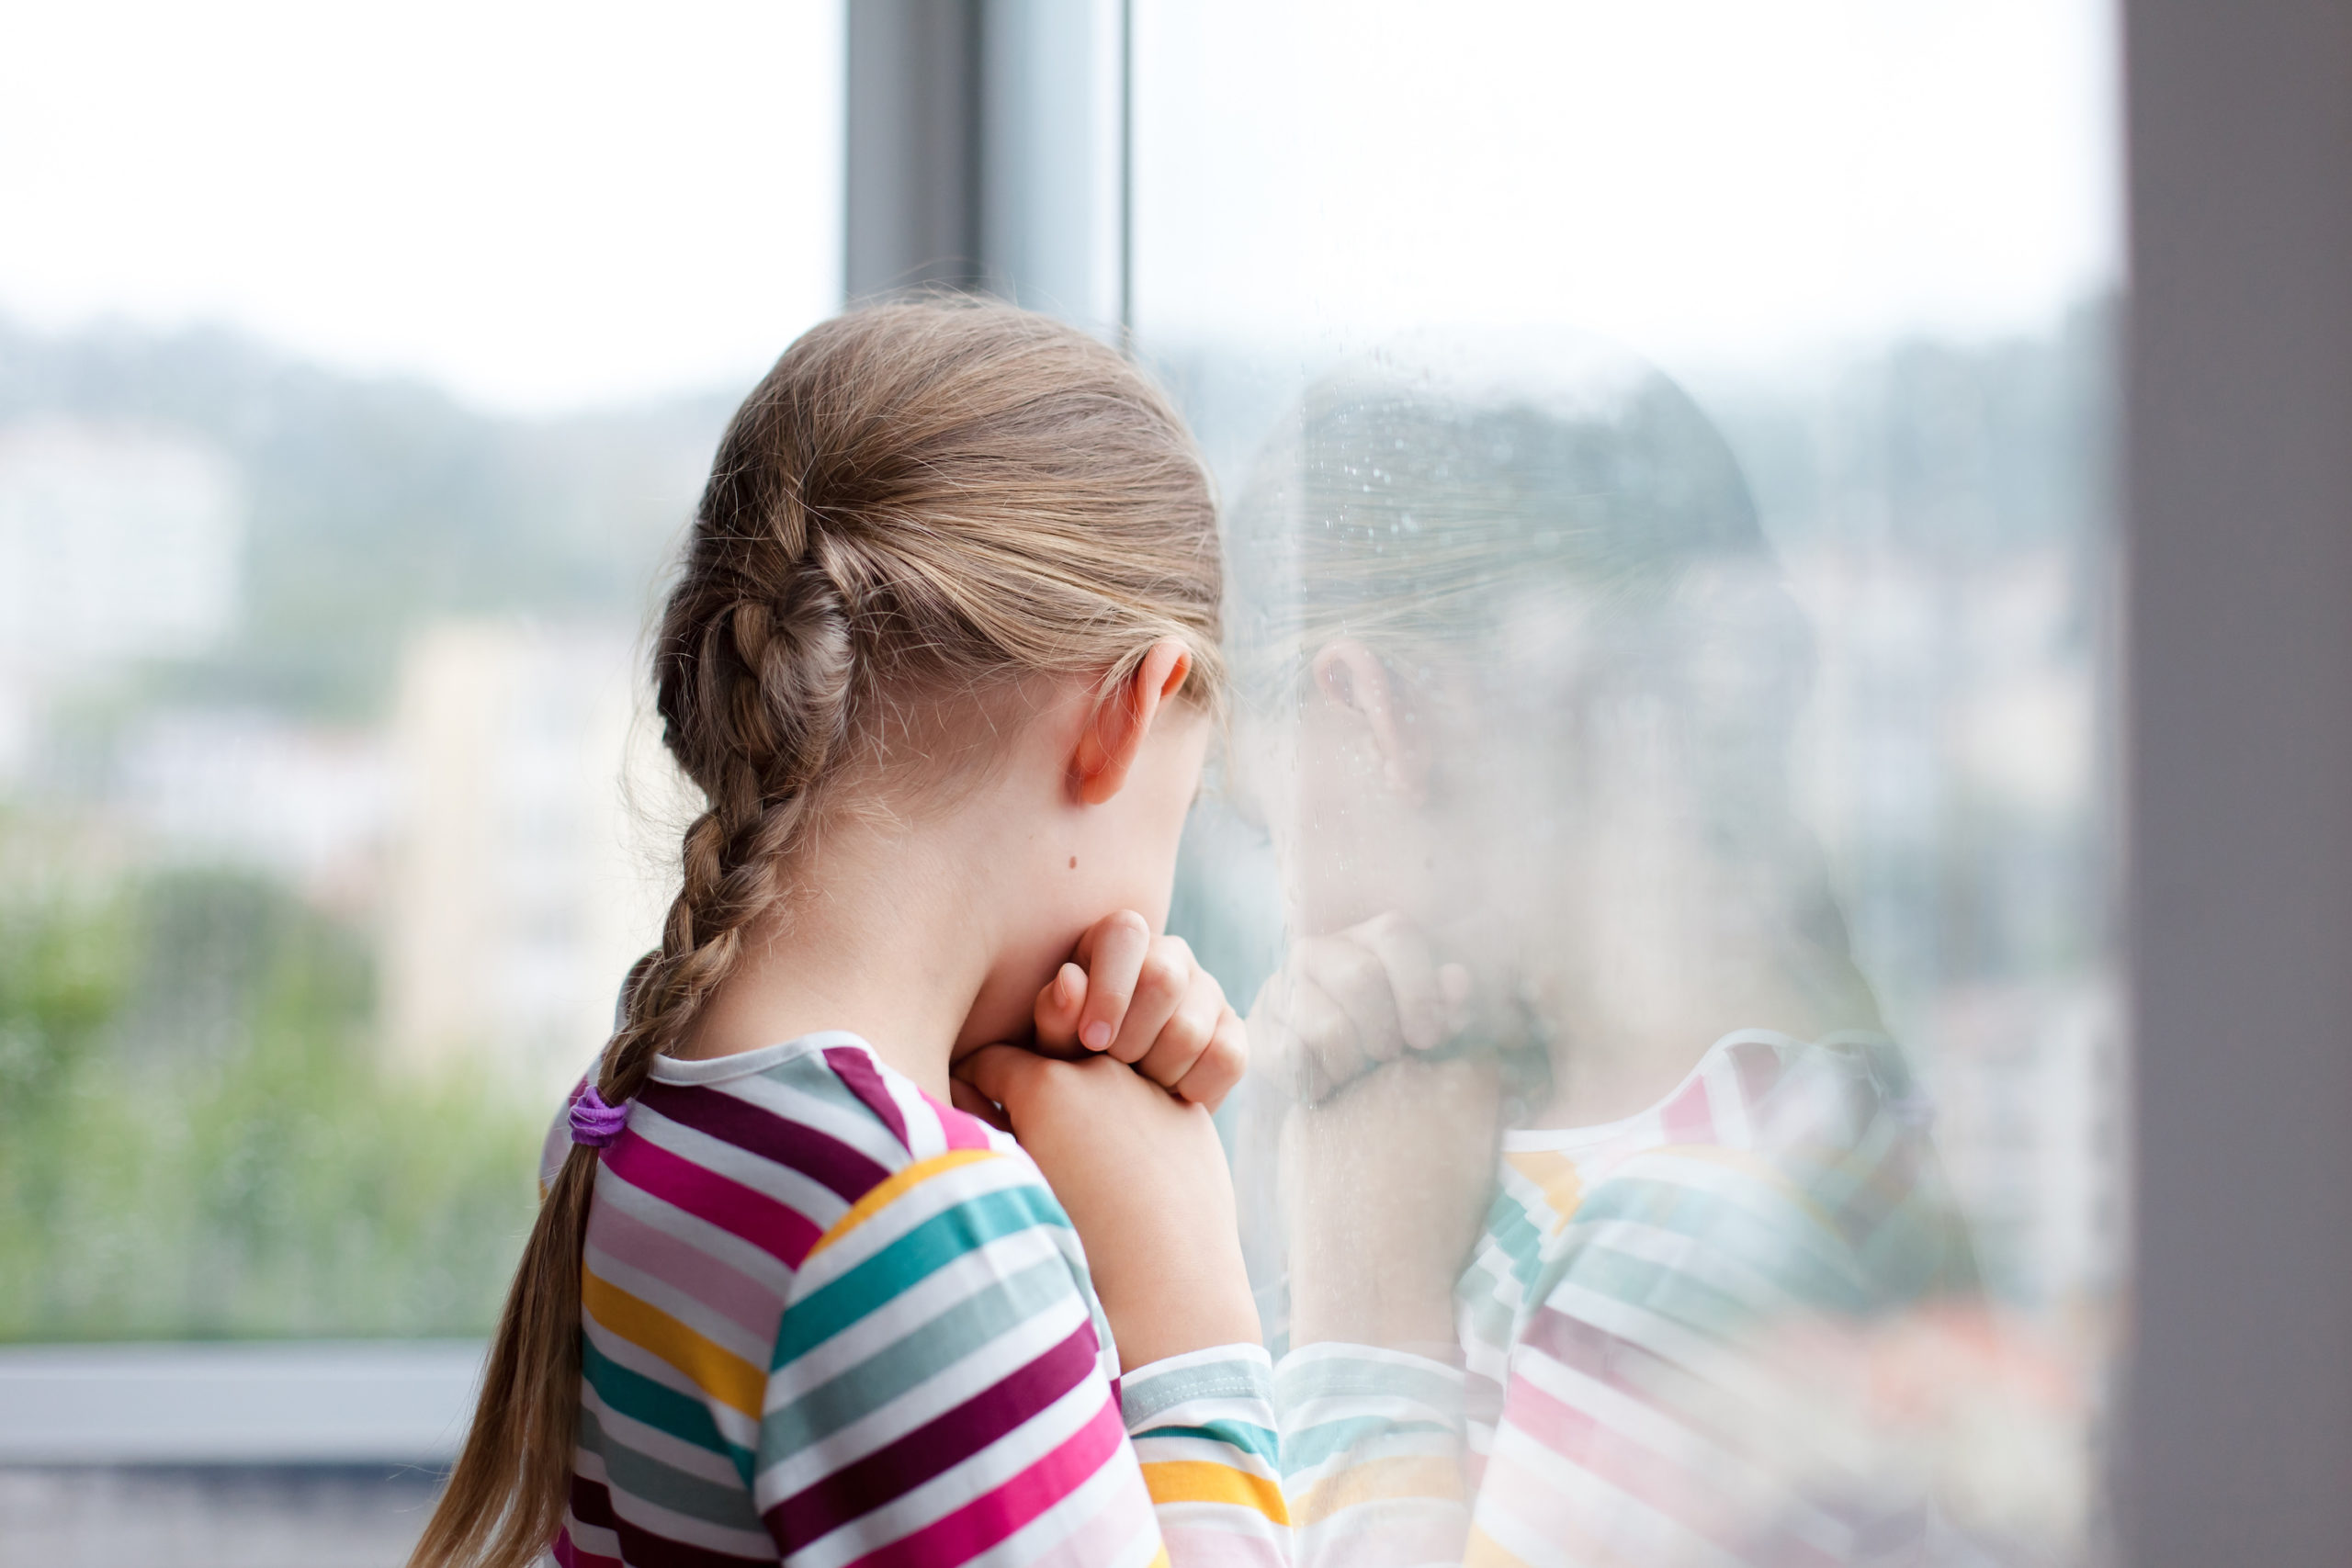 Withholding child visitation concept. Sad child looking through rainy window at home. Upset kid in self isolation during quarantine.